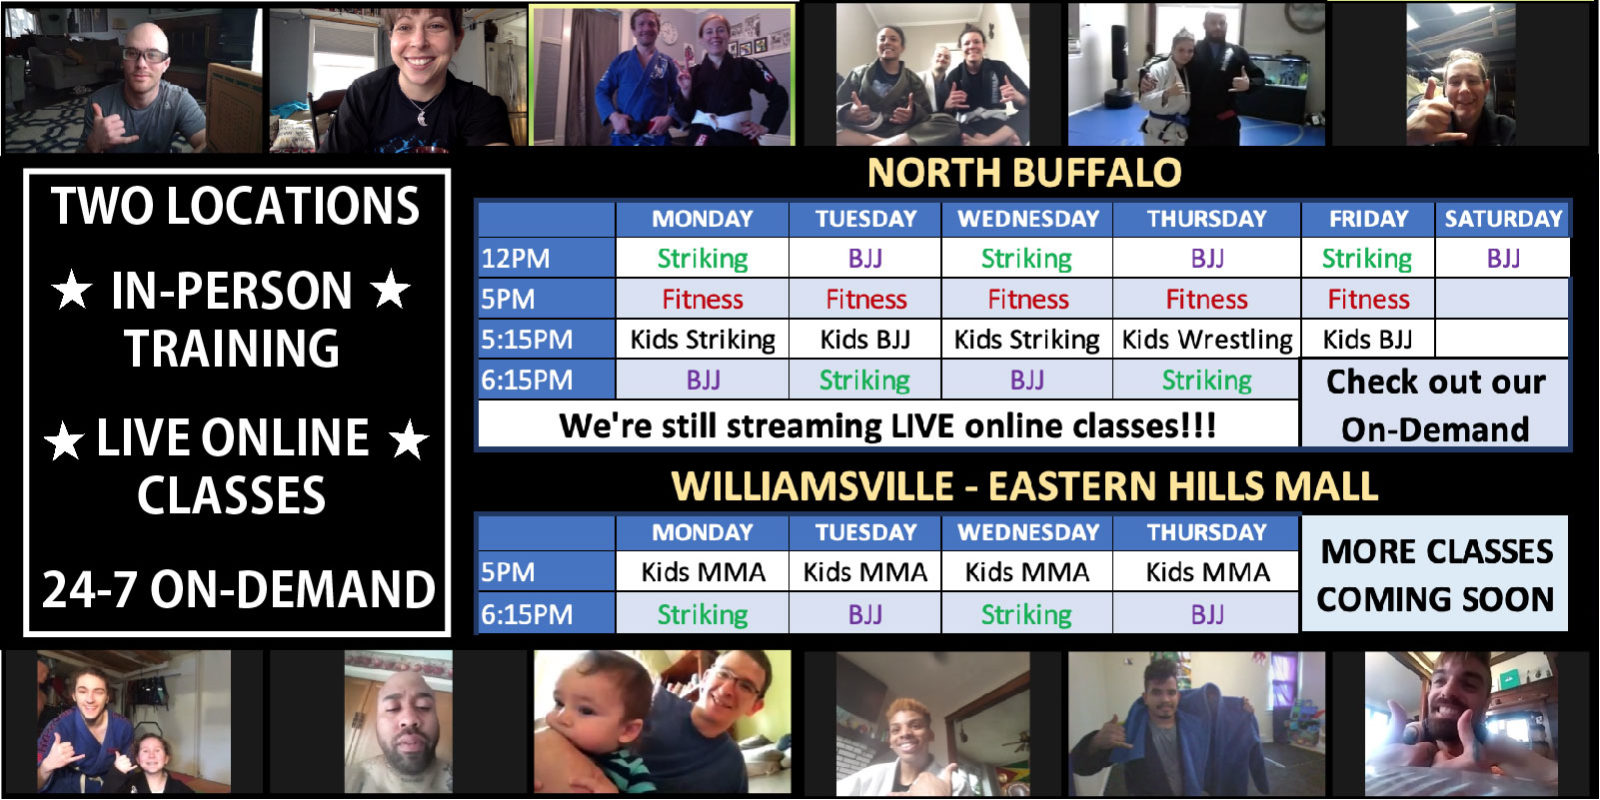 Join our live online classes!